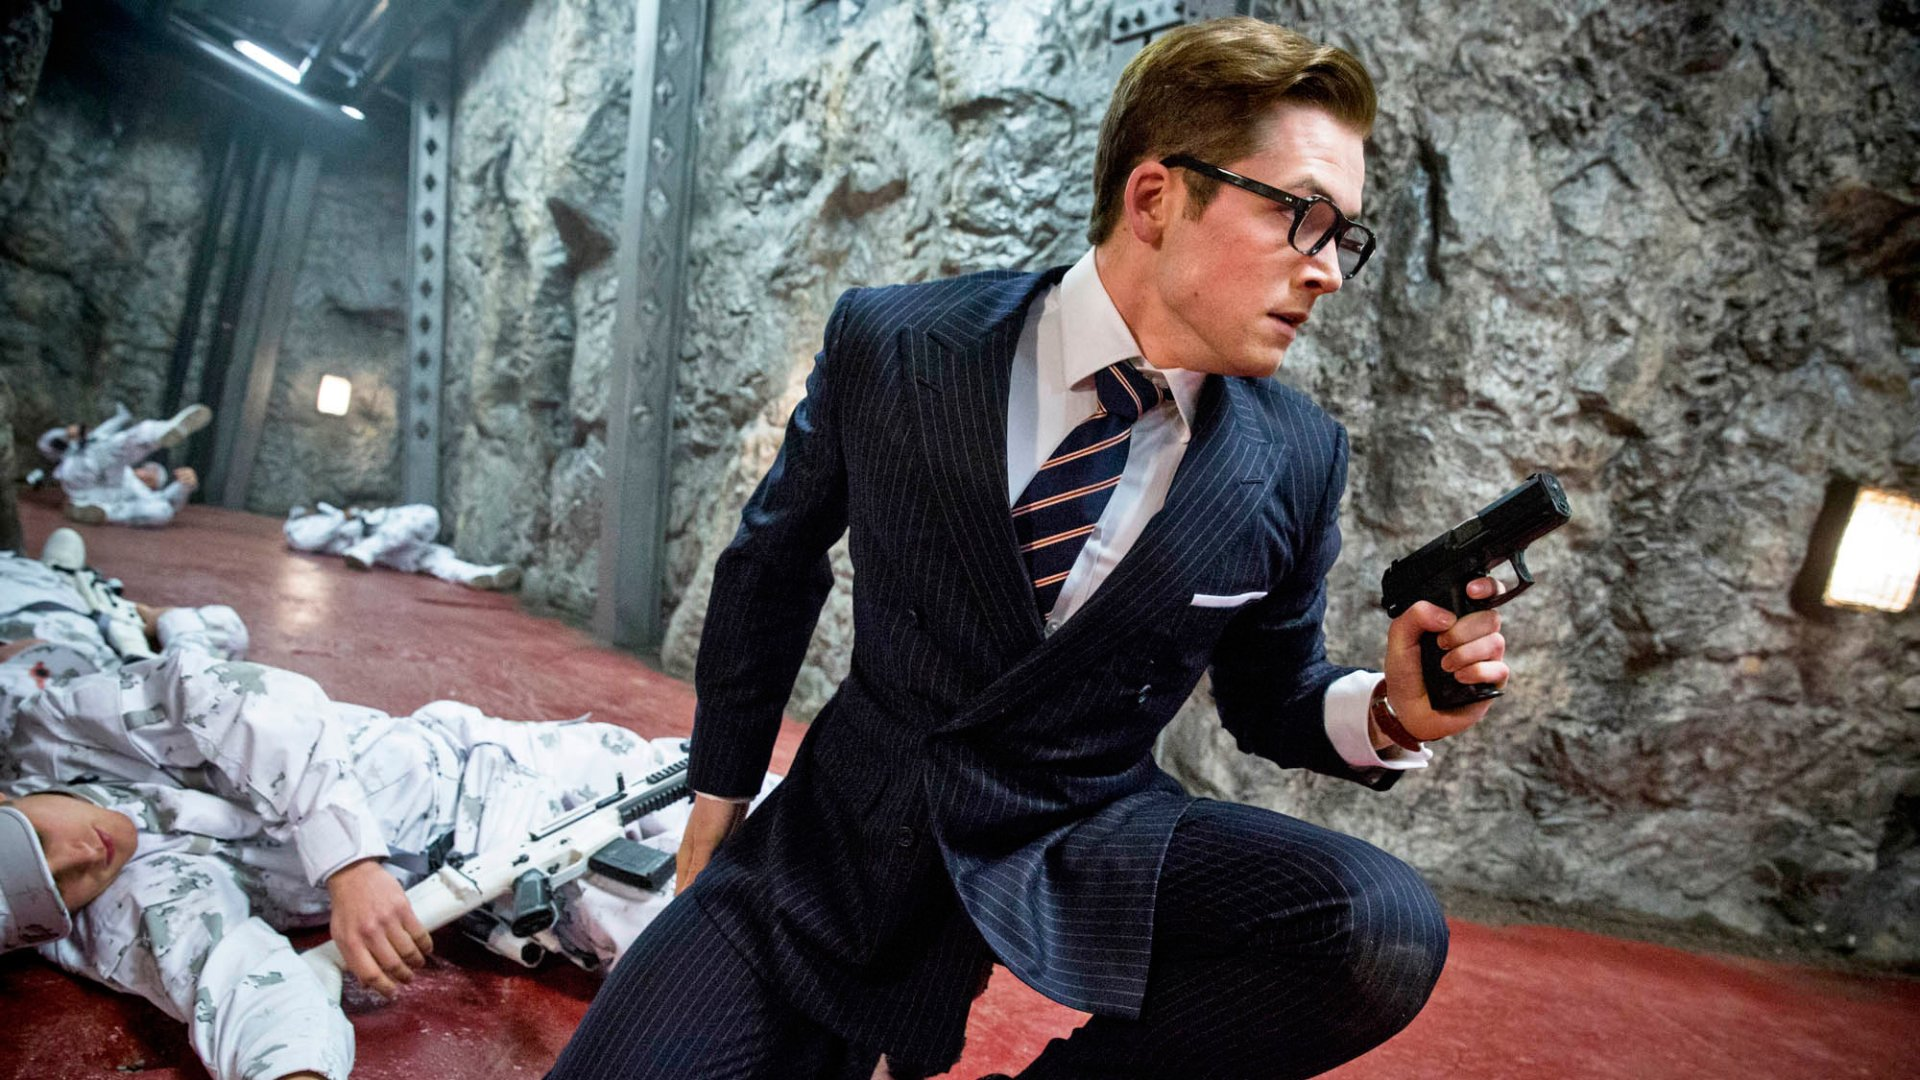 Kingsman The Secret Service Interview Taron Egerton: Kingsman: The Secret Service HD Wallpaper